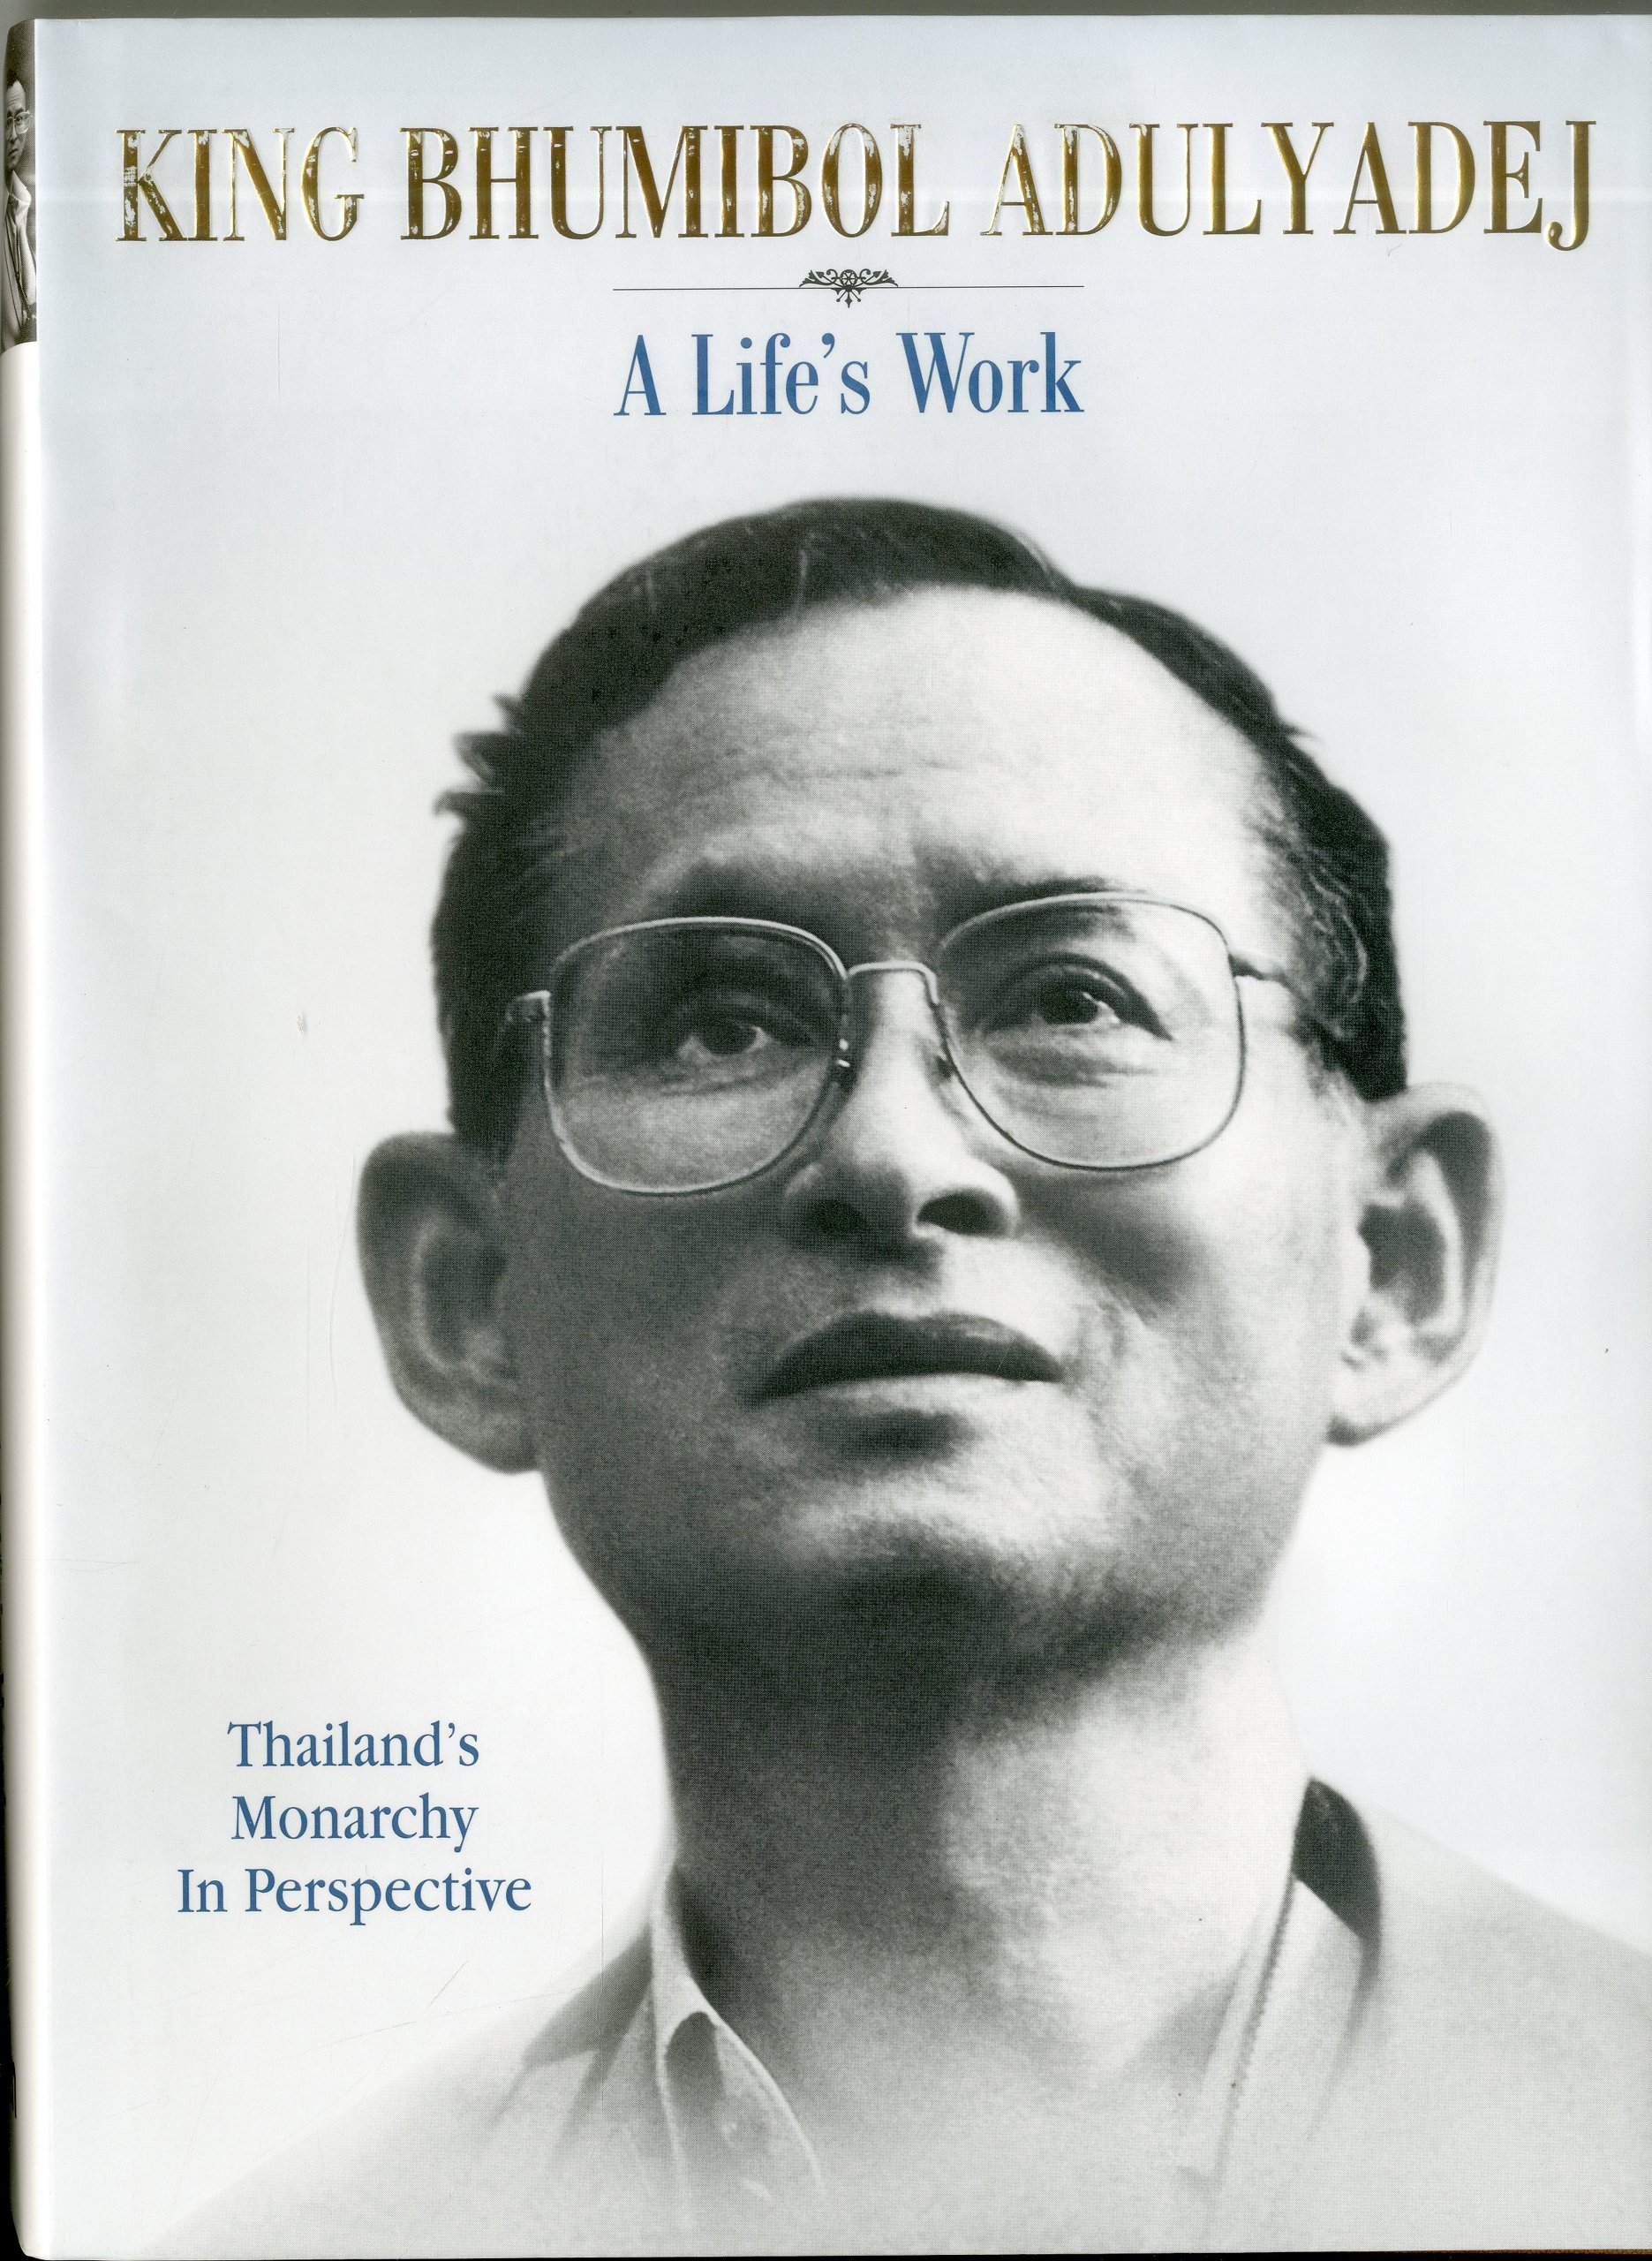 King Bhumibol Adulyadej: A Life's Work: Nicholas Grossman, Dominic Faulder:  9789814260565: Amazon: Books